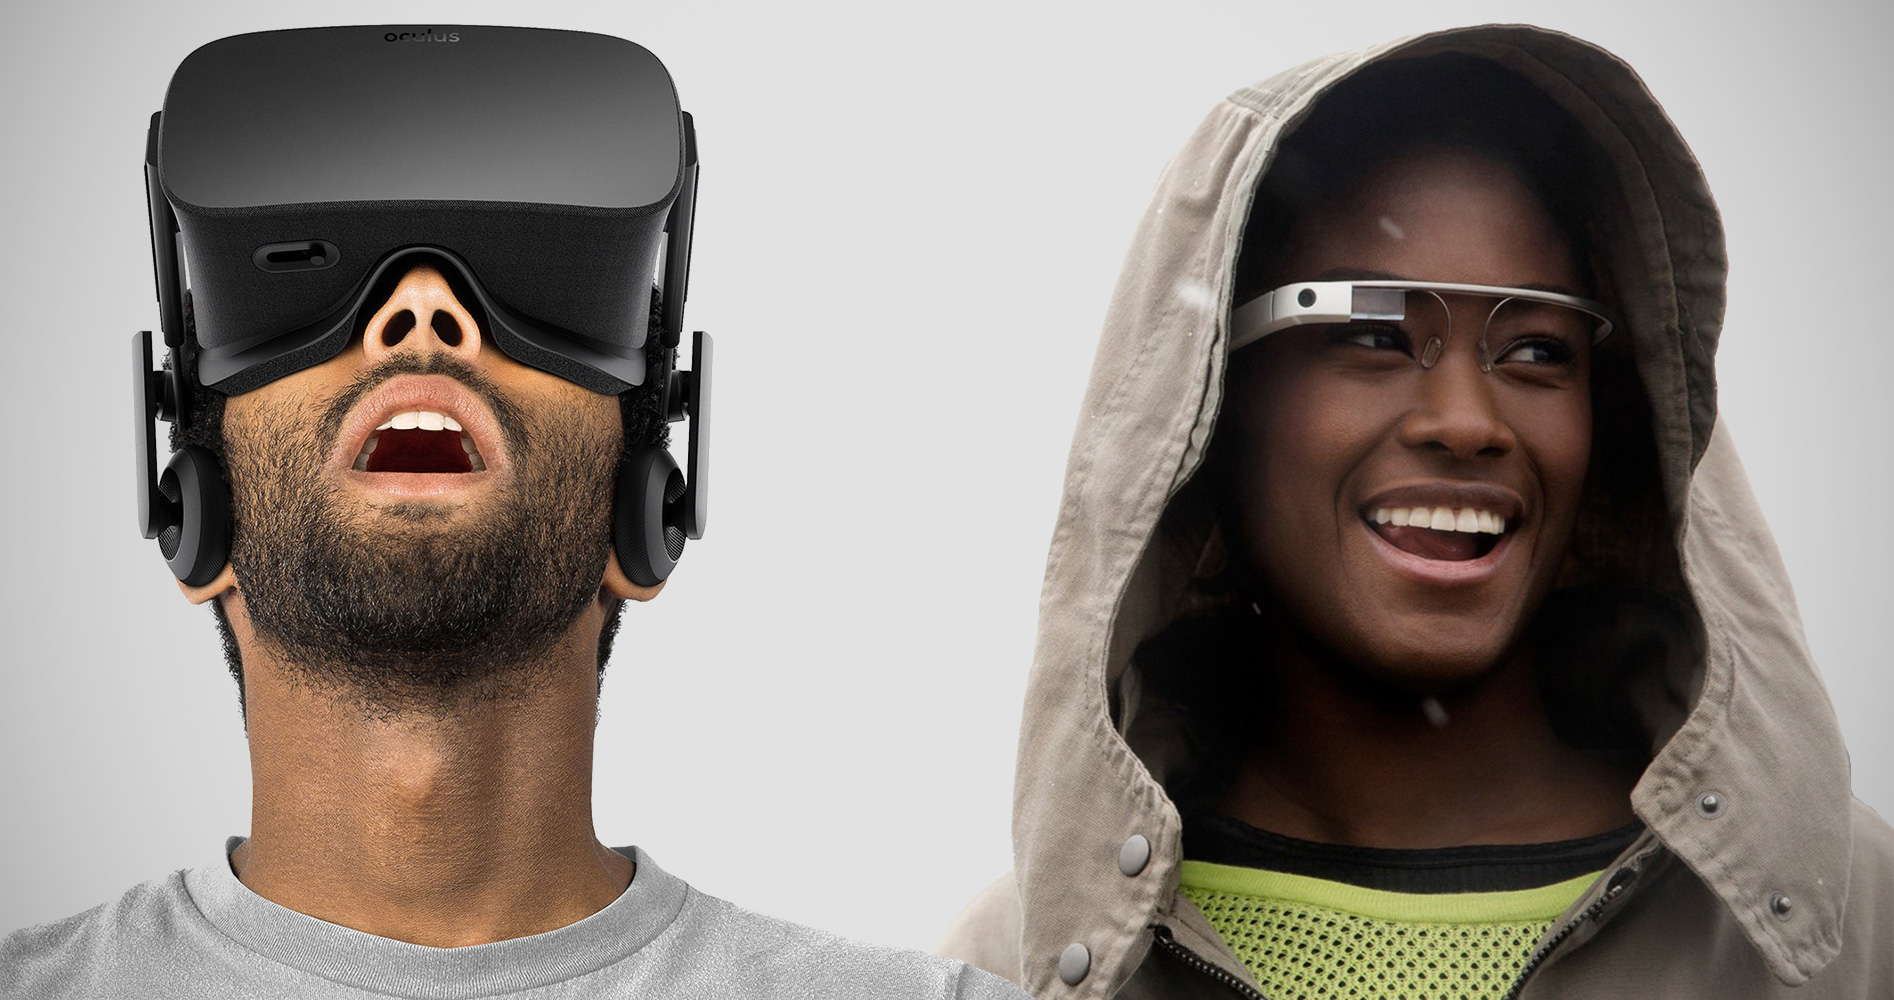 Why the Oculus Rift won't go the way of Google Glass | TechCrunch